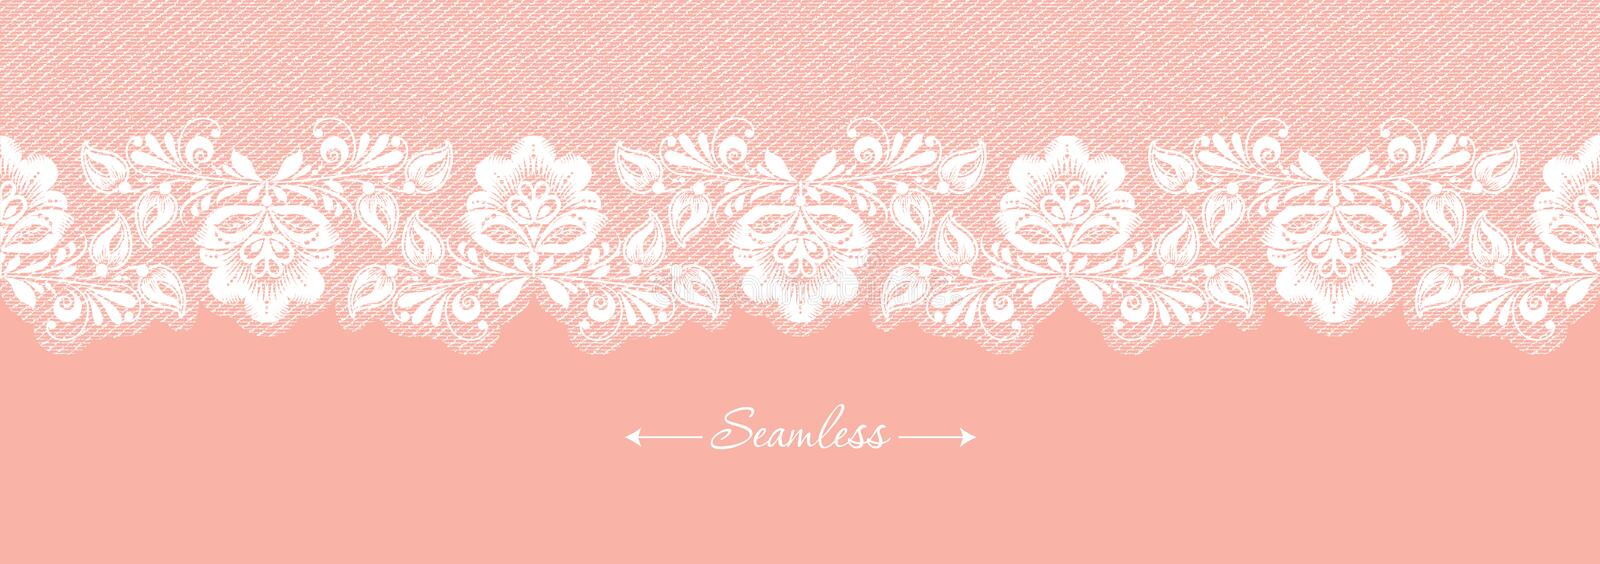 Vintage coral floral seamless lace trim banner, great design for any purposes. Decorative ornate header with flower. vector illustration